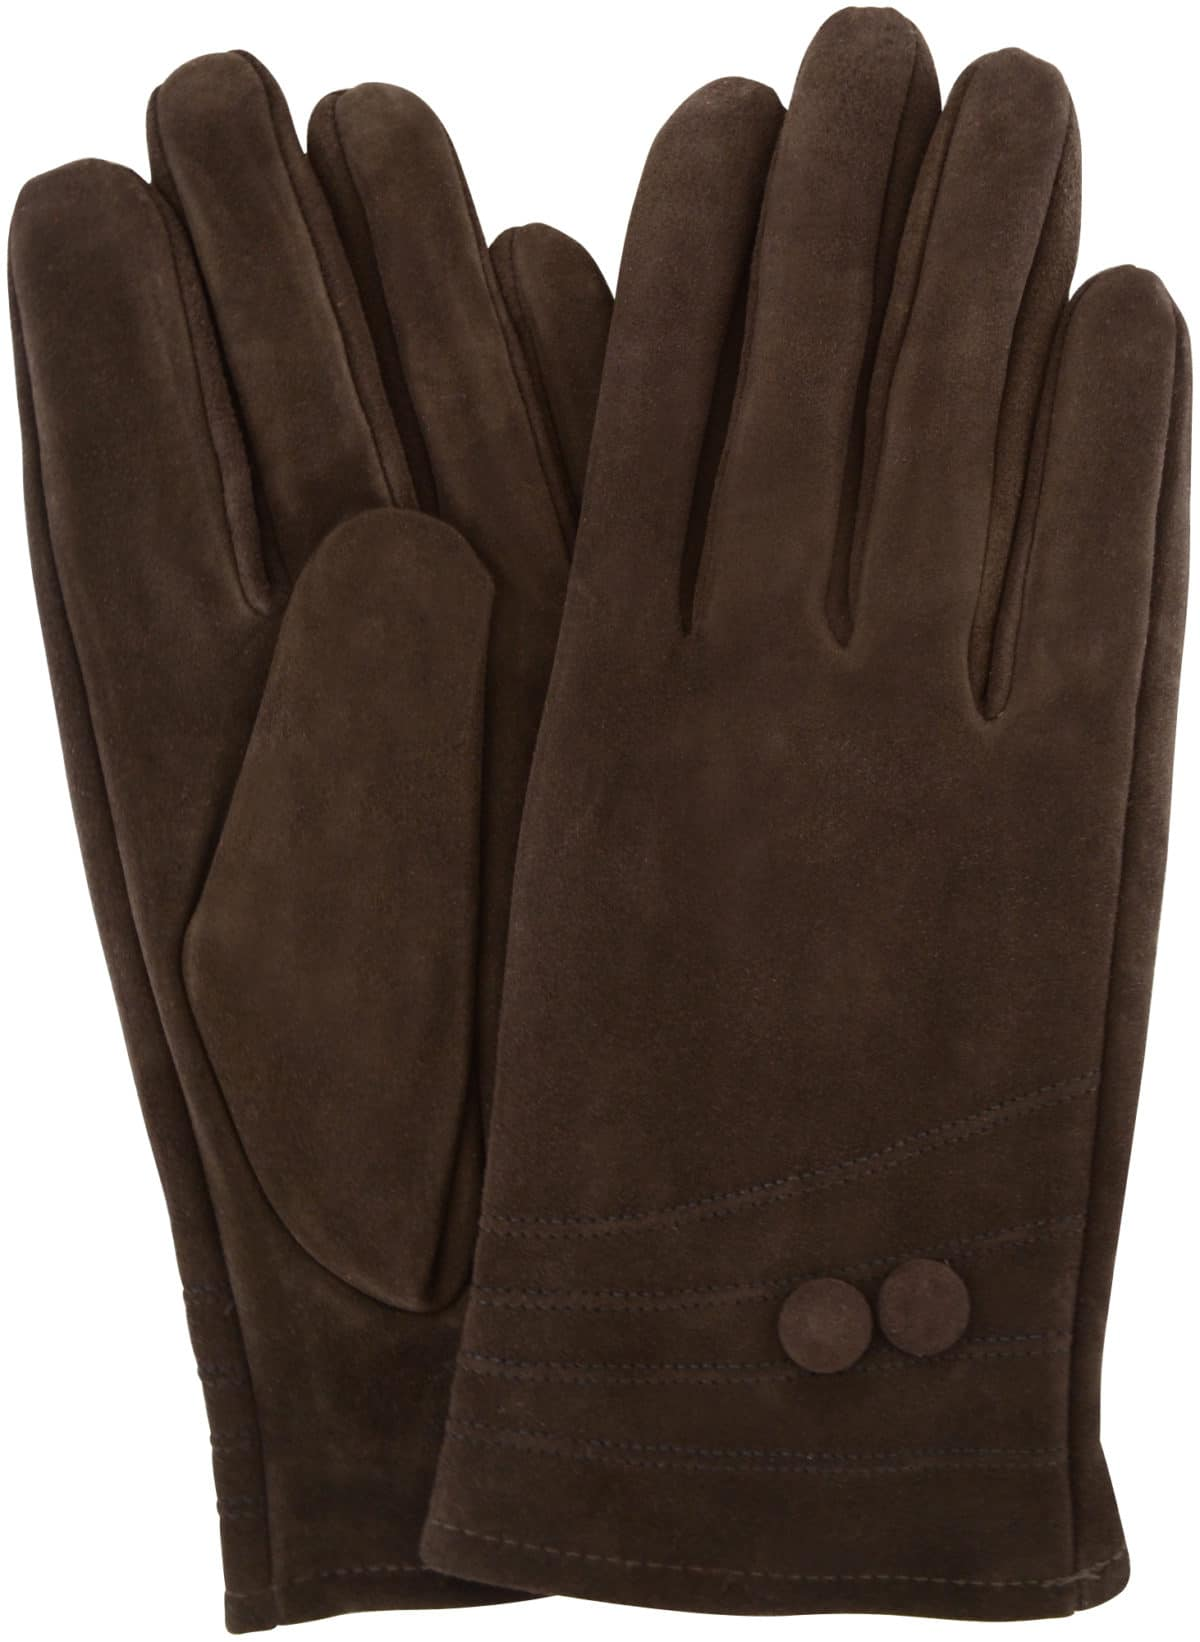 Suede Gloves Fleece Lining and Button Design - Brown